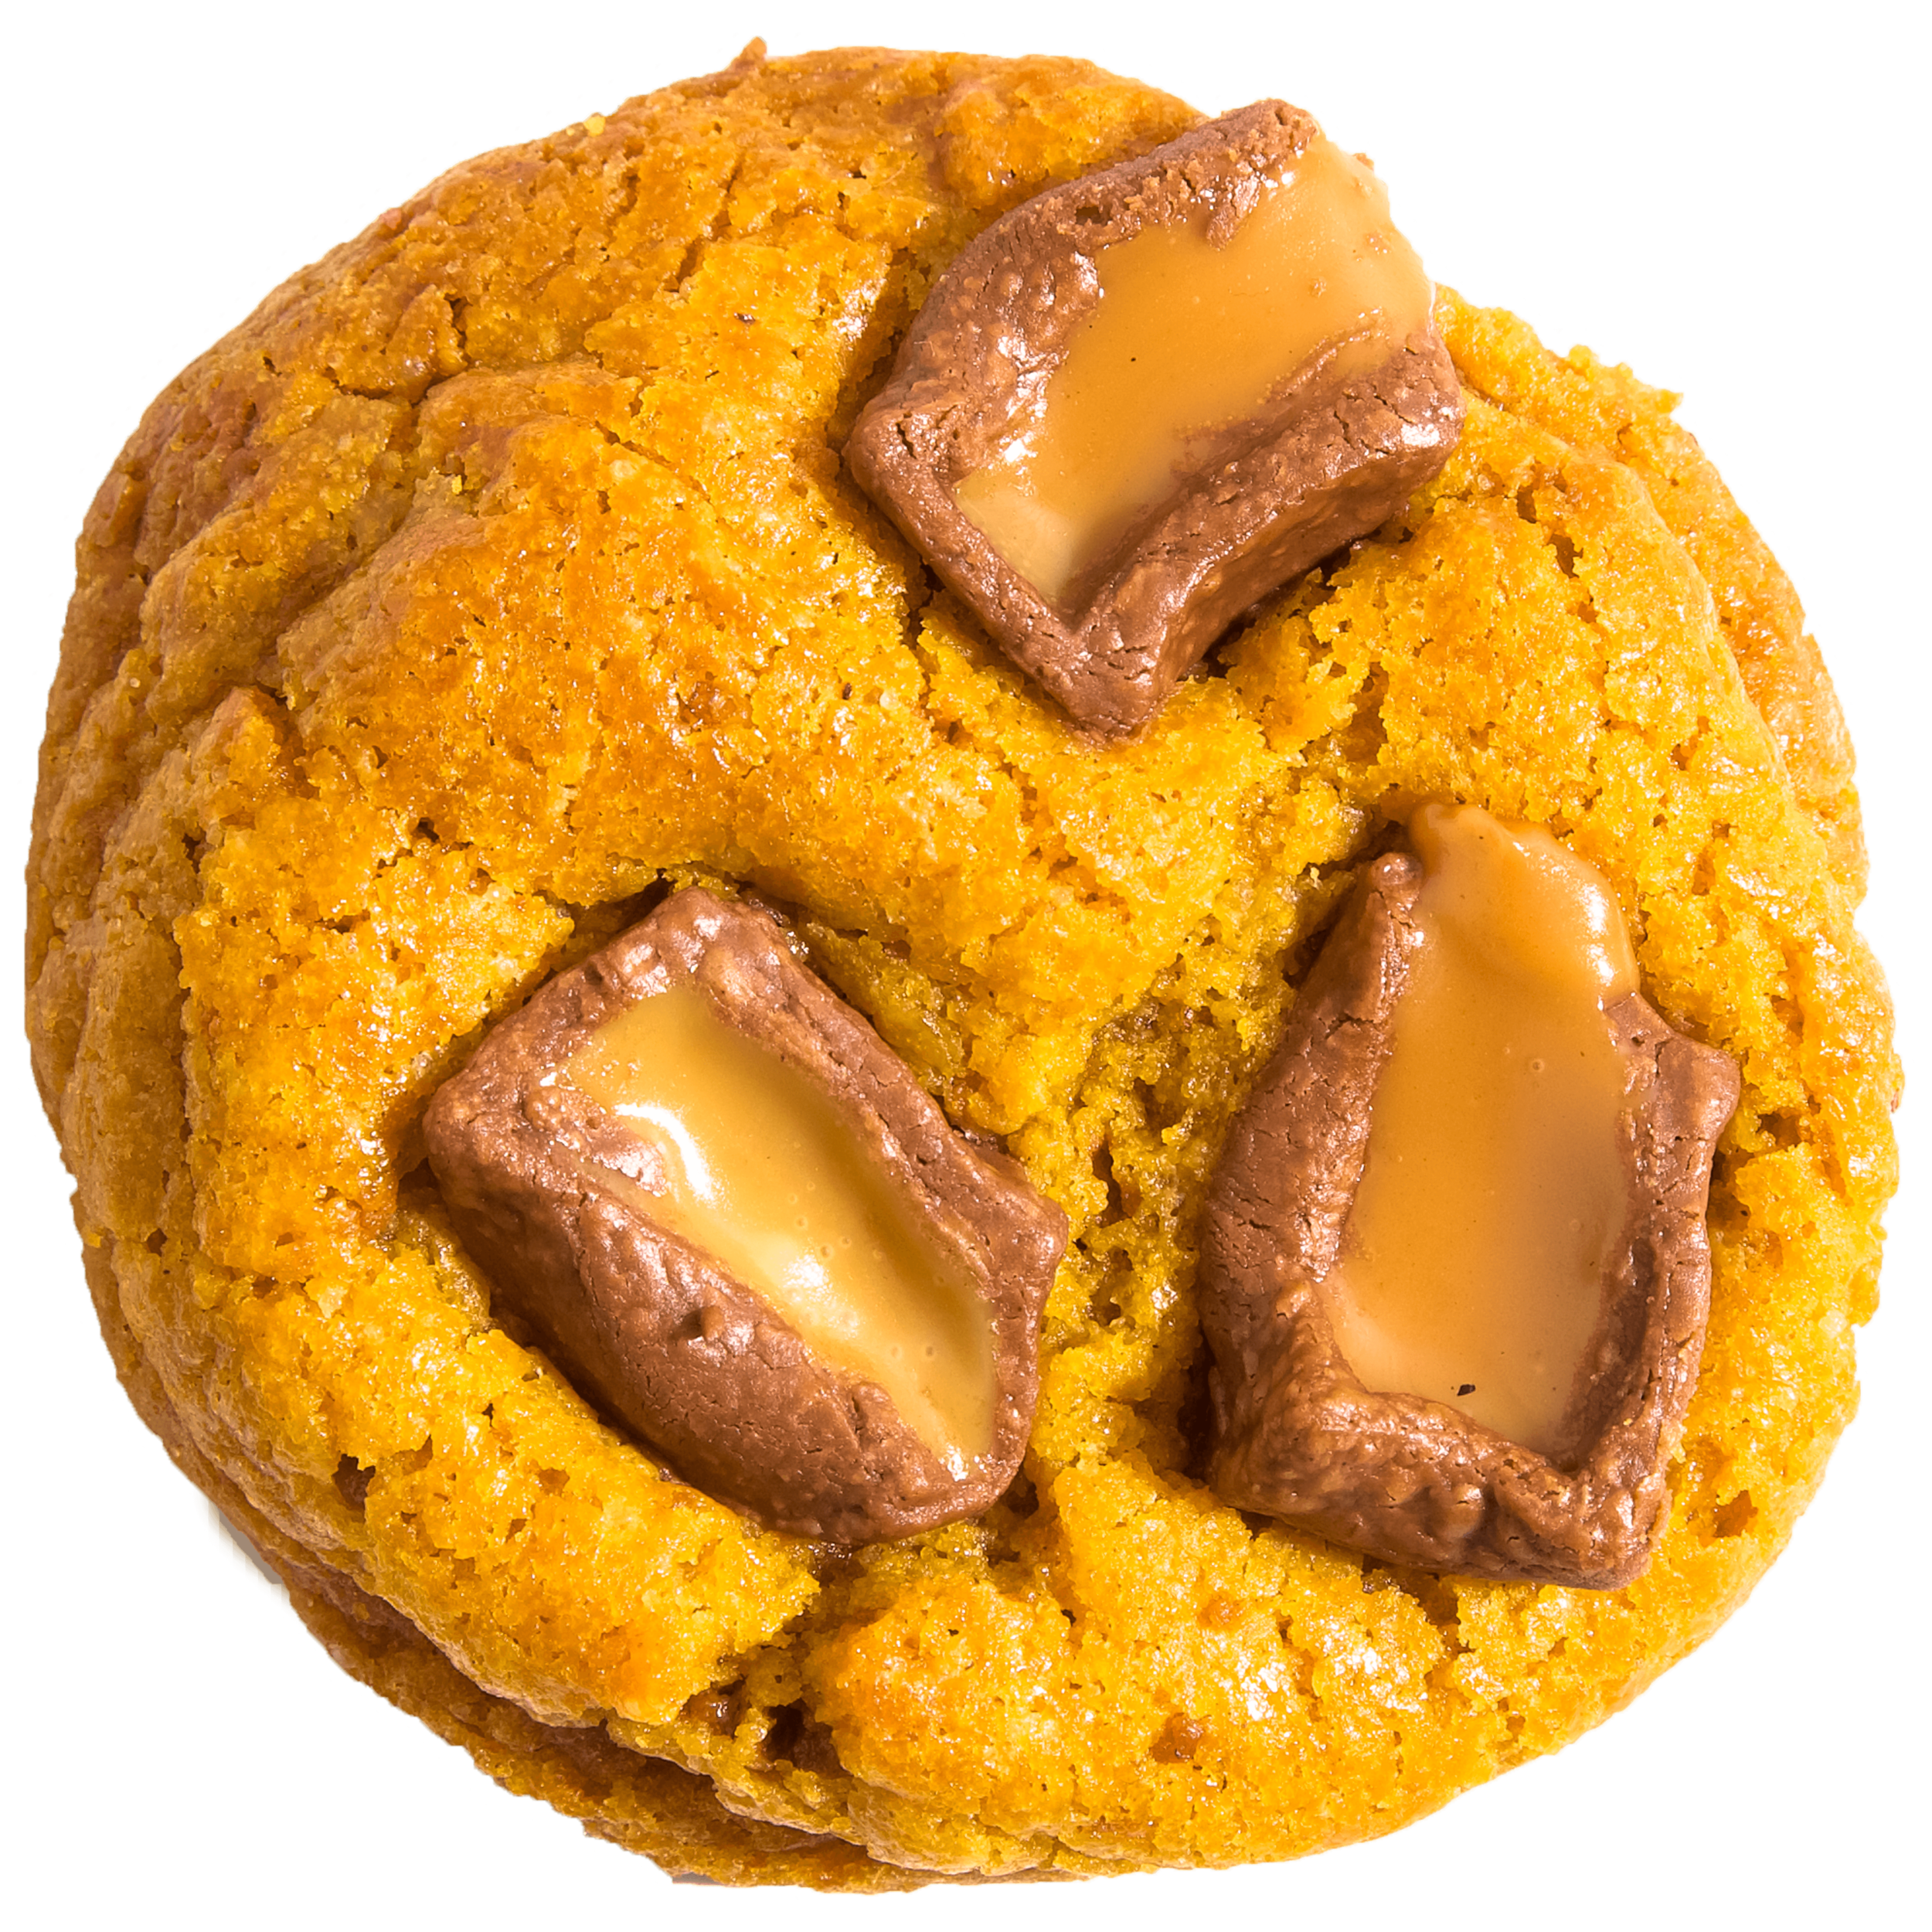 You thought we weren't gonna spice it up!? Well, meet Butter Rolol. Our signature Butter Cookie topped with classic Rolls.